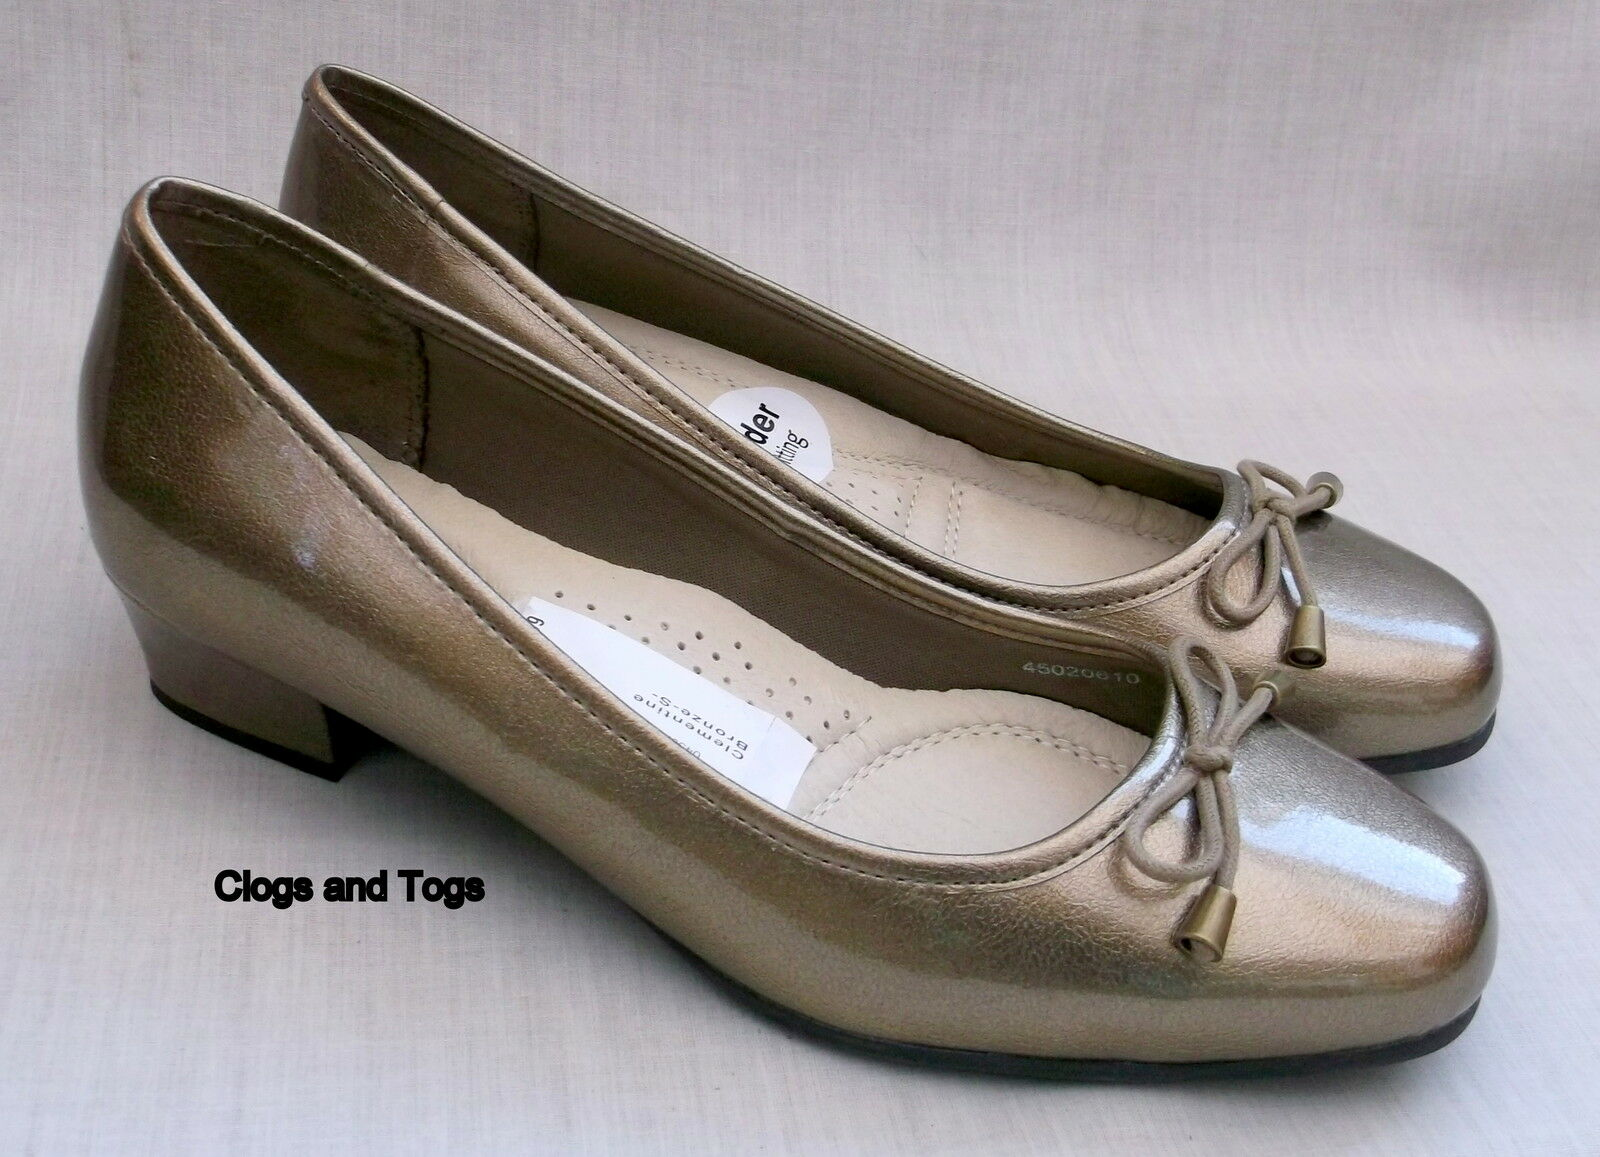 NEUF K by CLARKS CLÉMENTINE Femme Bronze chaussures vernies taille 5 38 wide fit